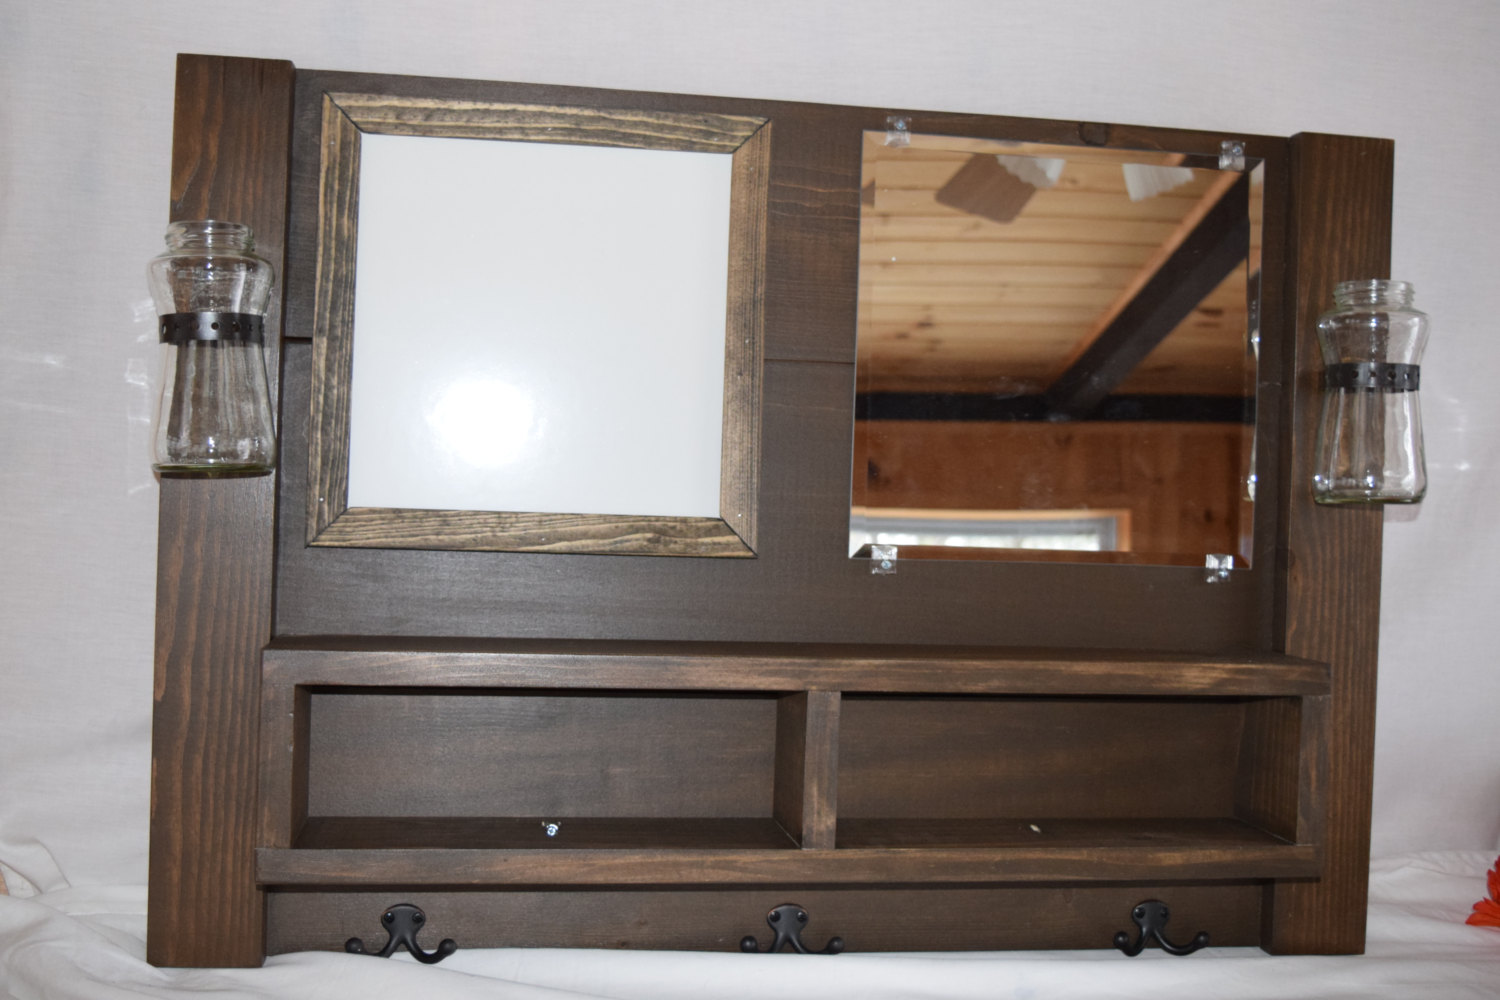 Entryway Mirror | Entryway Wall Cabinet | Mirror For Entryway